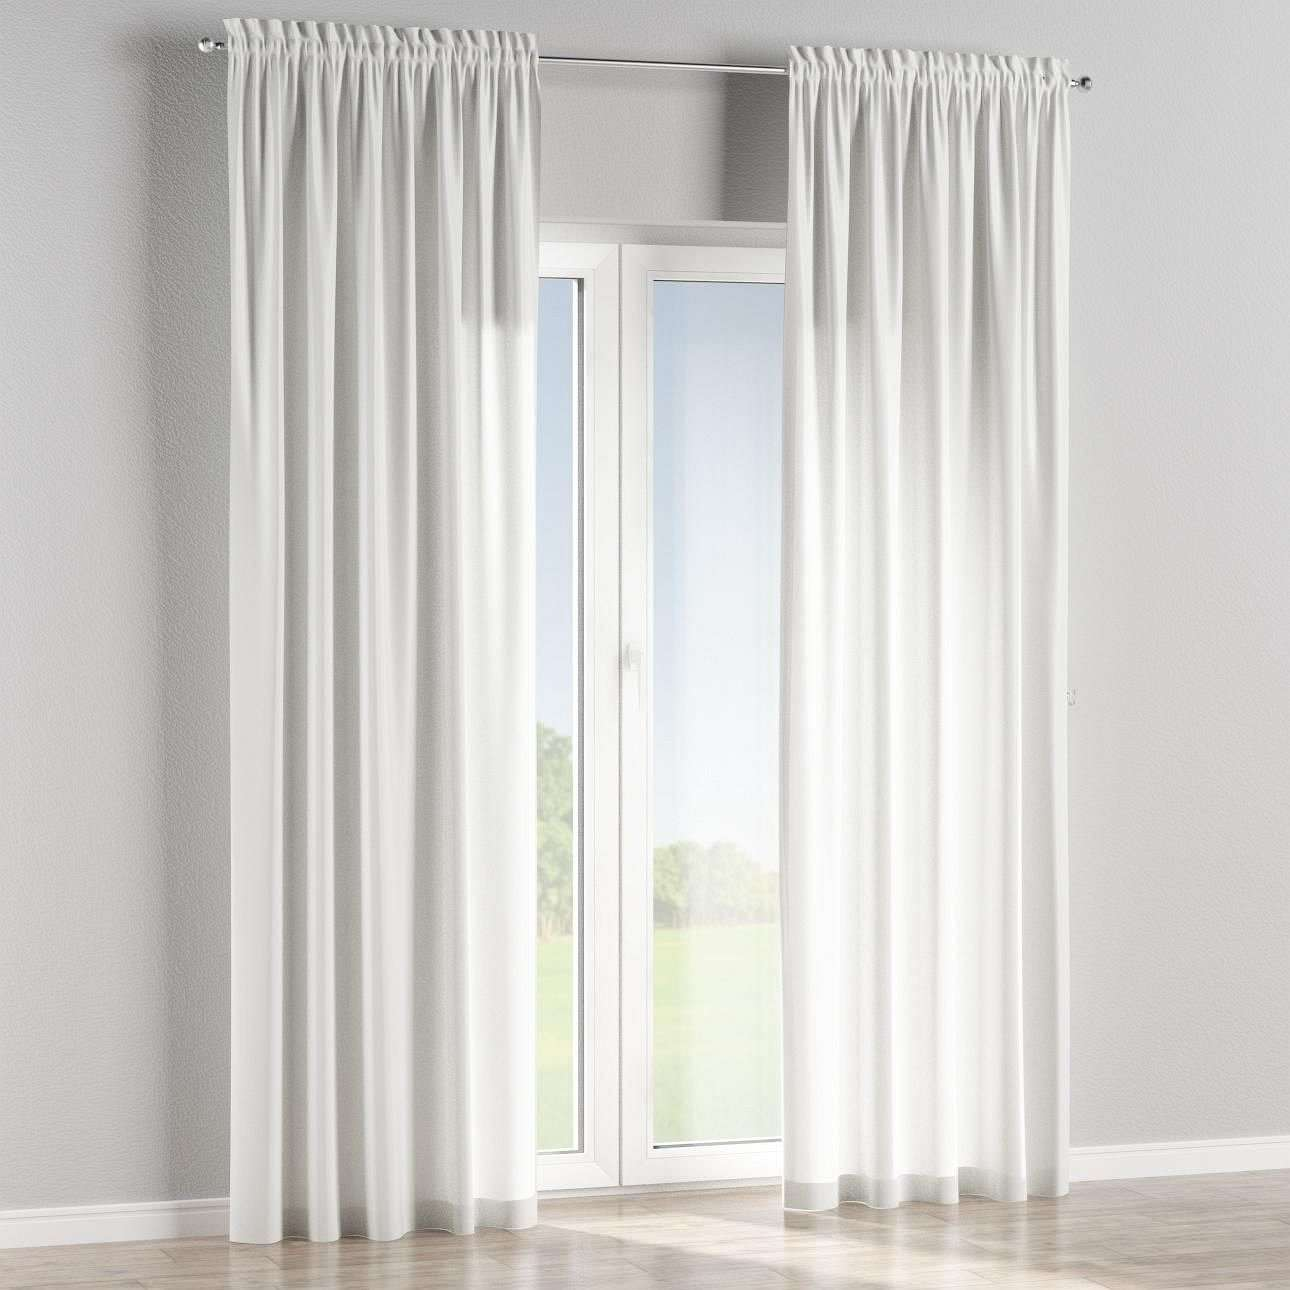 Slot and frill curtains in collection New Art, fabric: 140-26